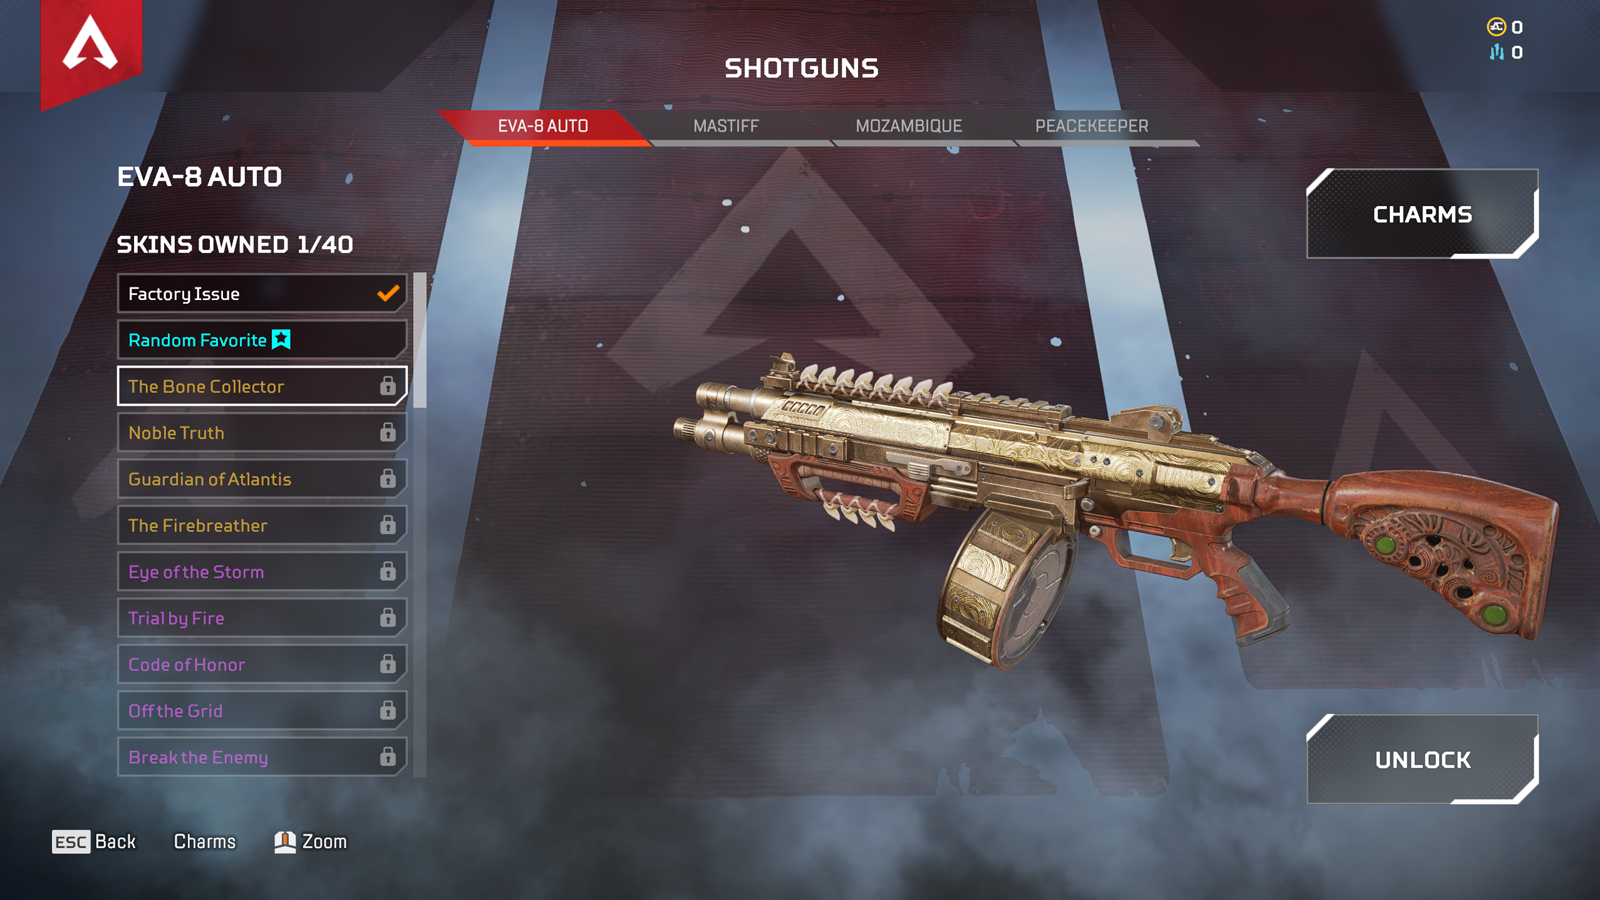 EVA-8 in the Apex Legends loadout menu